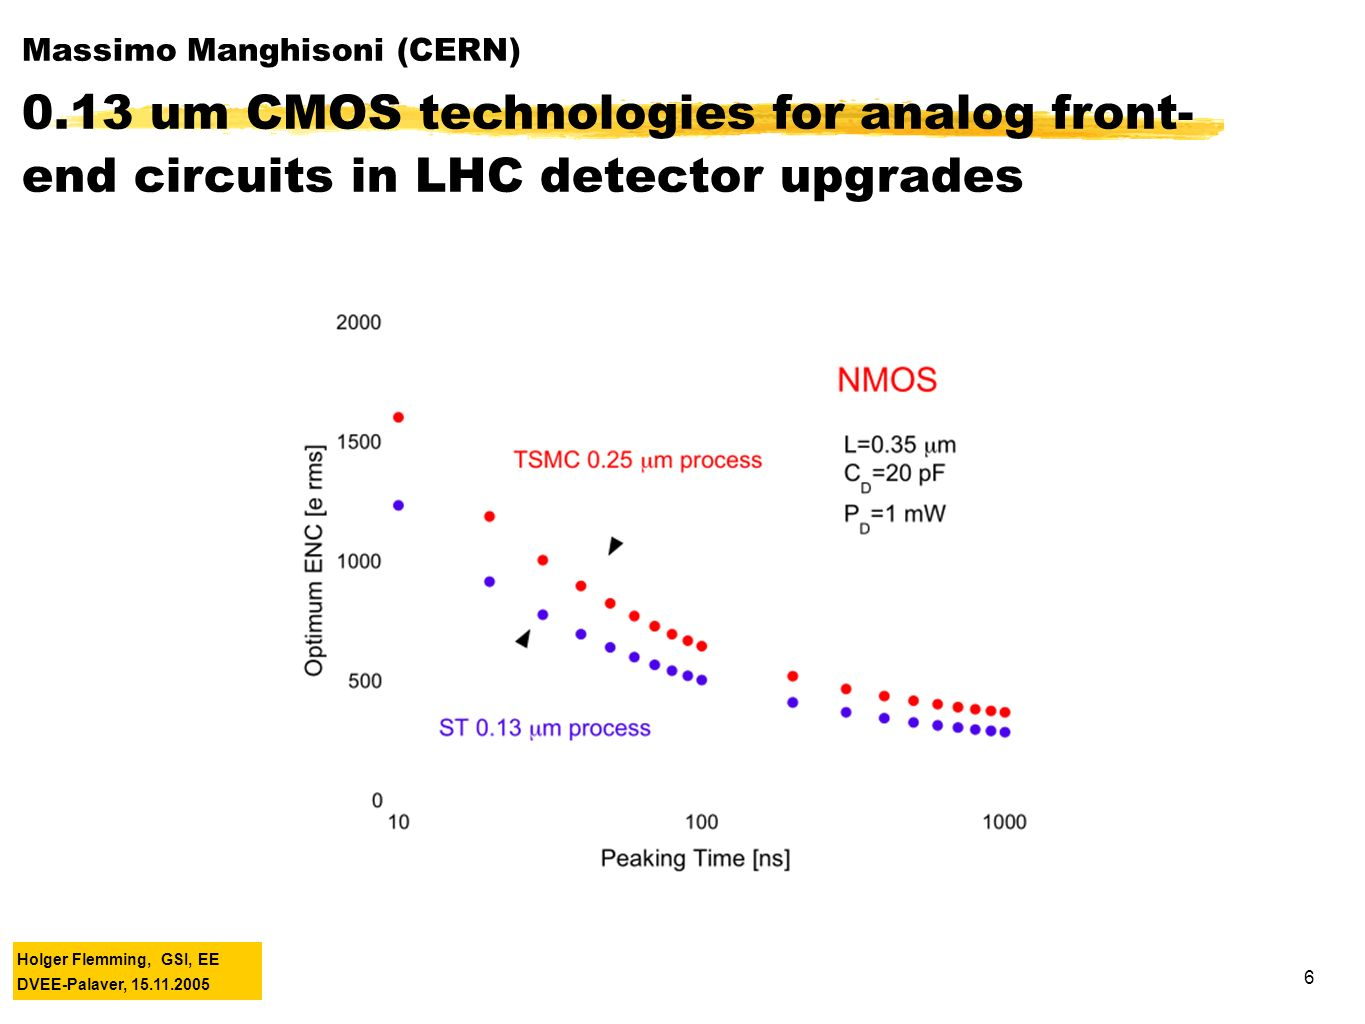 Holger Flemming, GSI, EE DVEE-Palaver, Massimo Manghisoni (CERN) 0.13 um CMOS technologies for analog front- end circuits in LHC detector upgrades